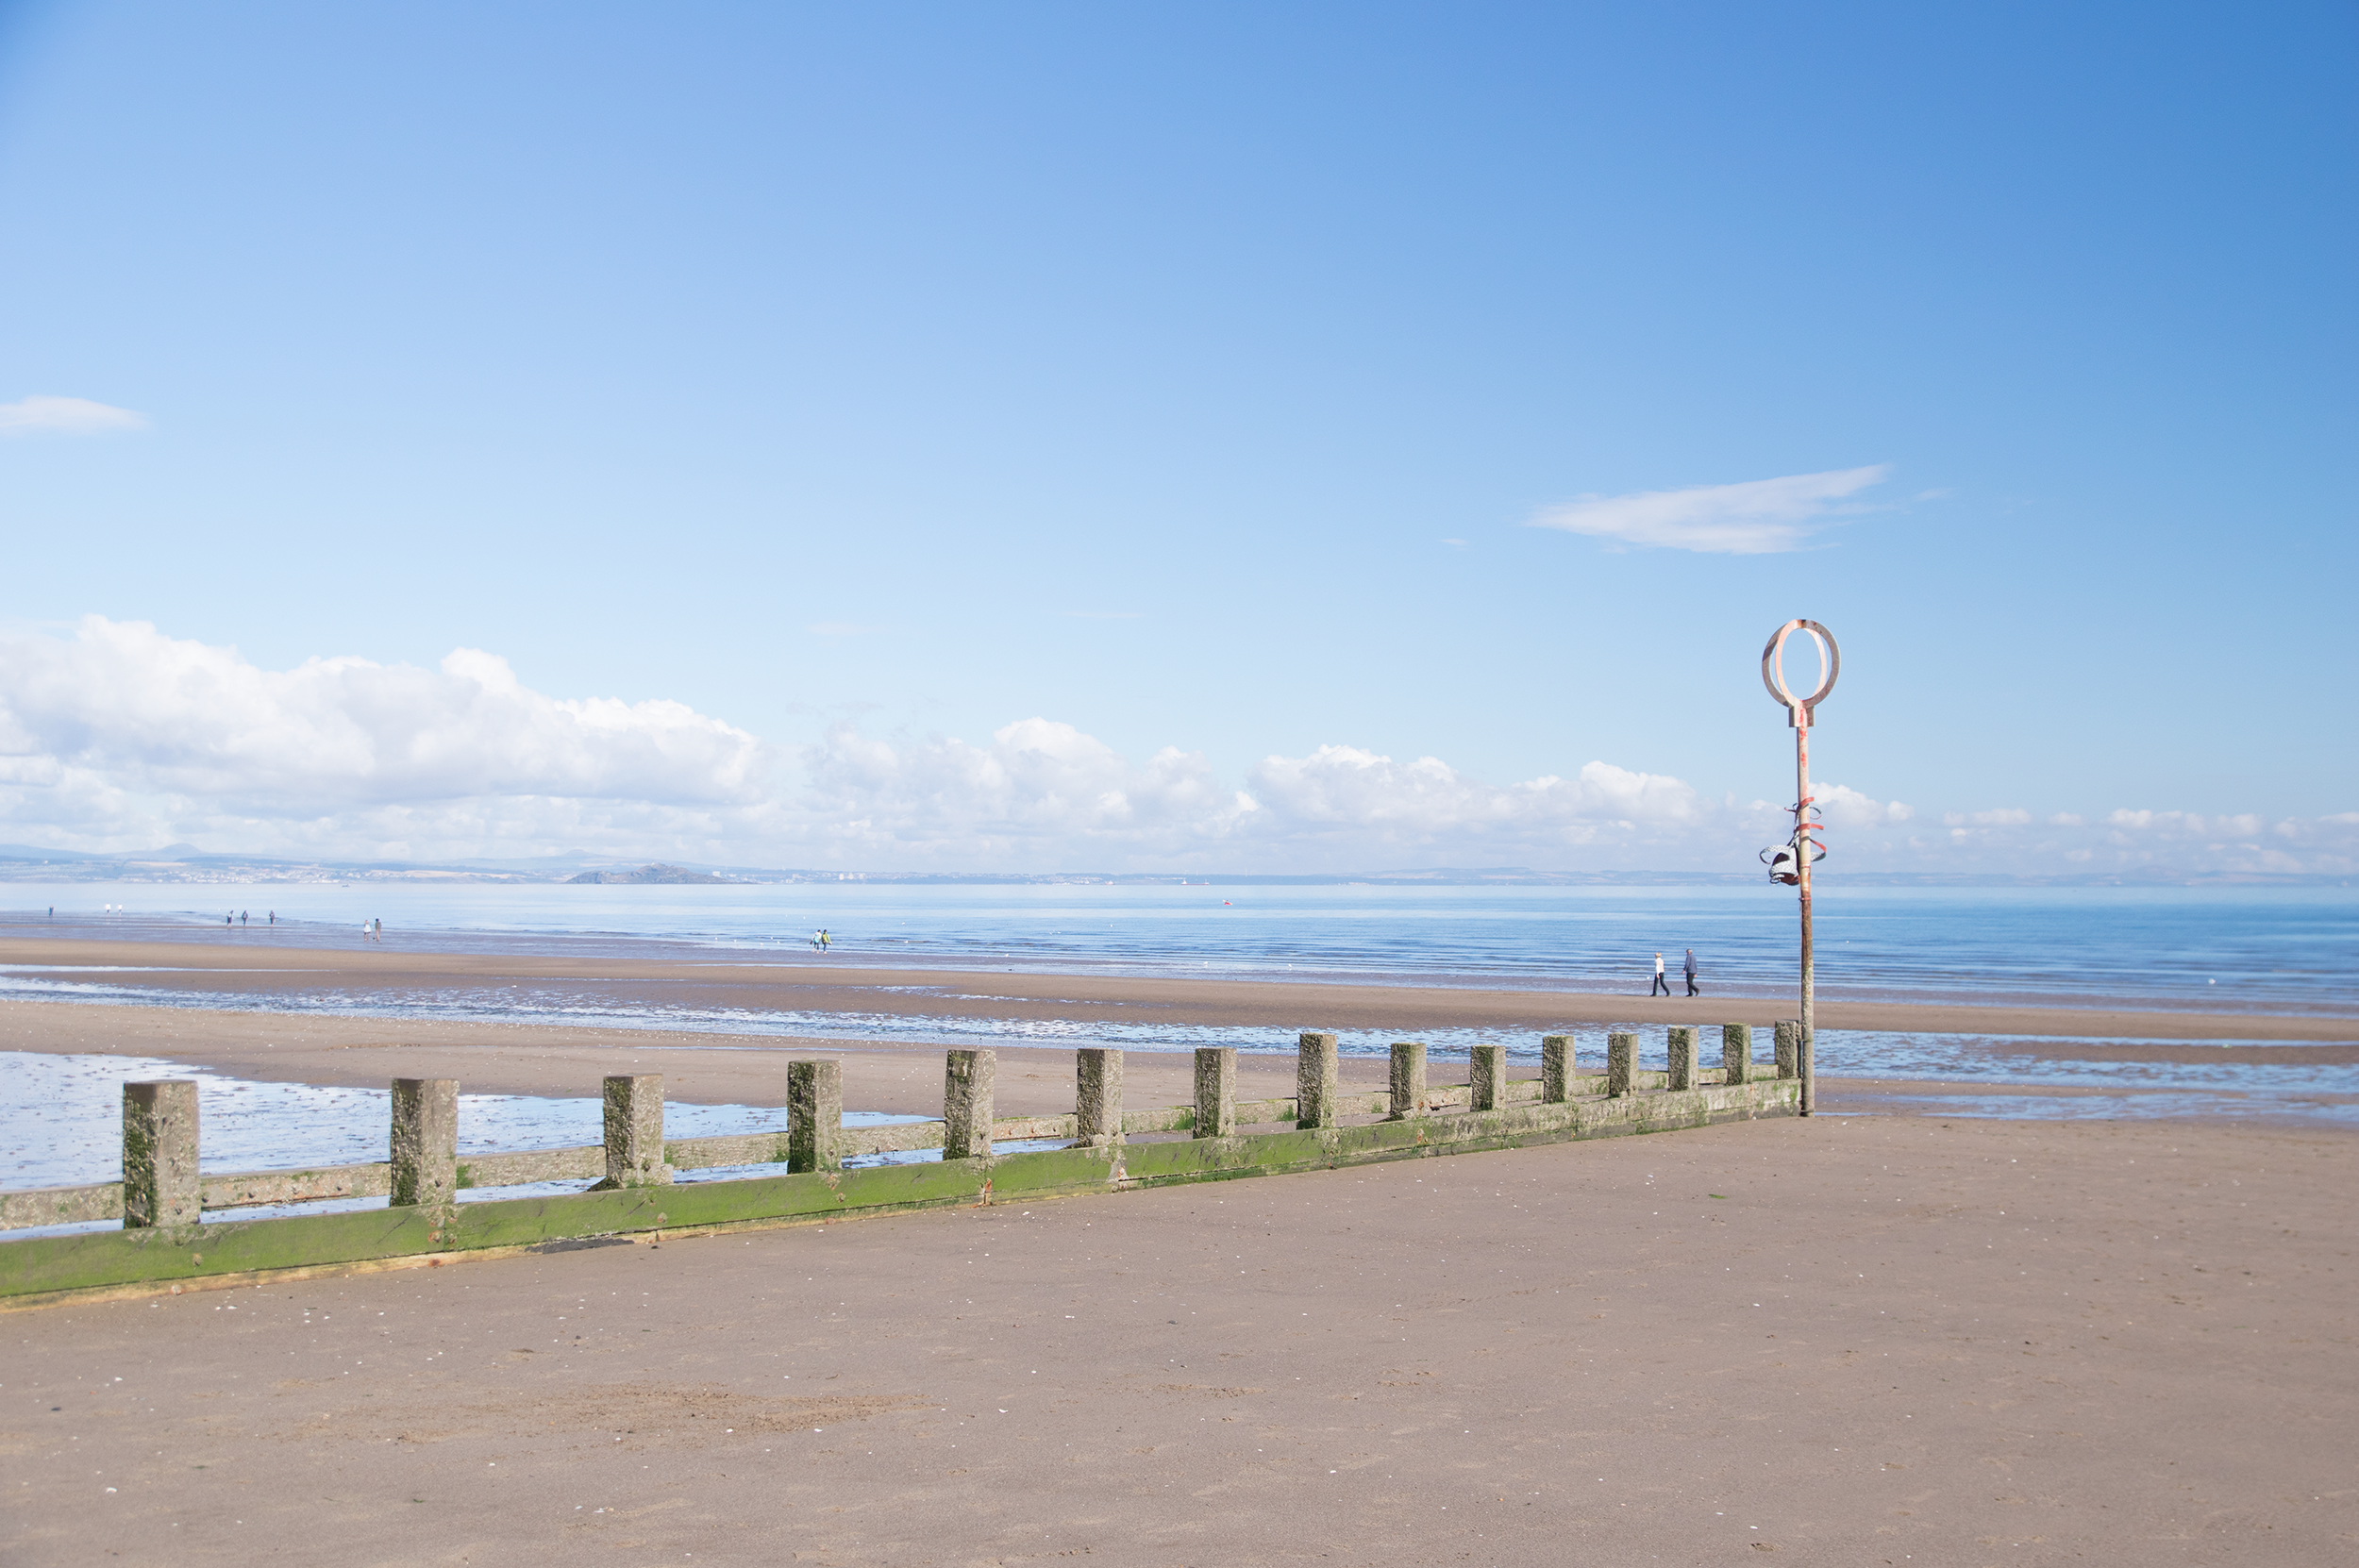 portobello-edimbourg-plage-visite-week-end